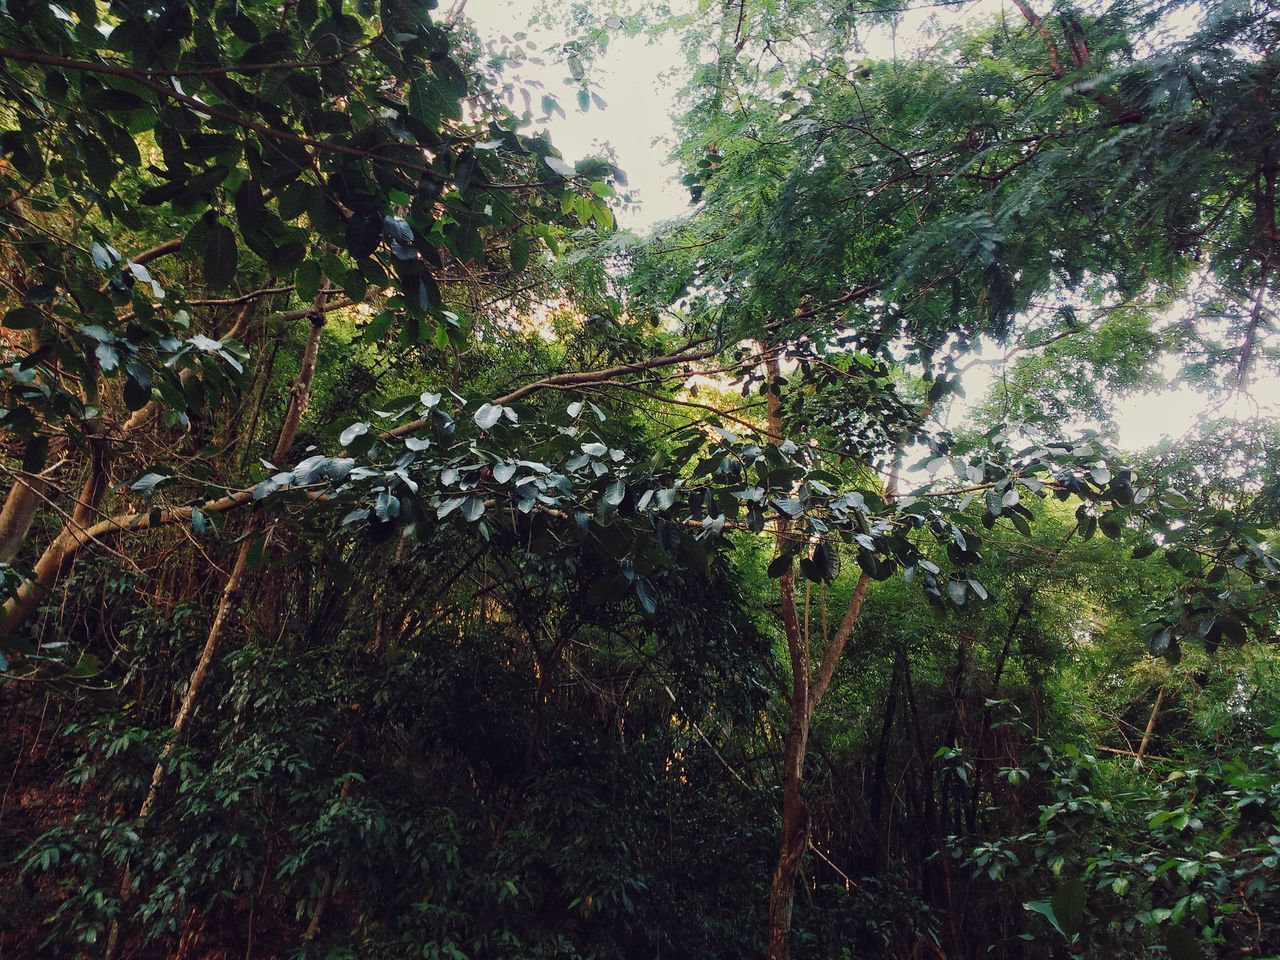 A tropical forest in Copacabana. Tree Nature Growth No People Beauty In Nature Backgrounds Low Angle View Full Frame Close-up Day Outdoors Scenics Tranquility Brazilian Travel Destinations Freshness Forest Rainforest Jungle Flora Copacabana Foilage Tropical Canopy Green